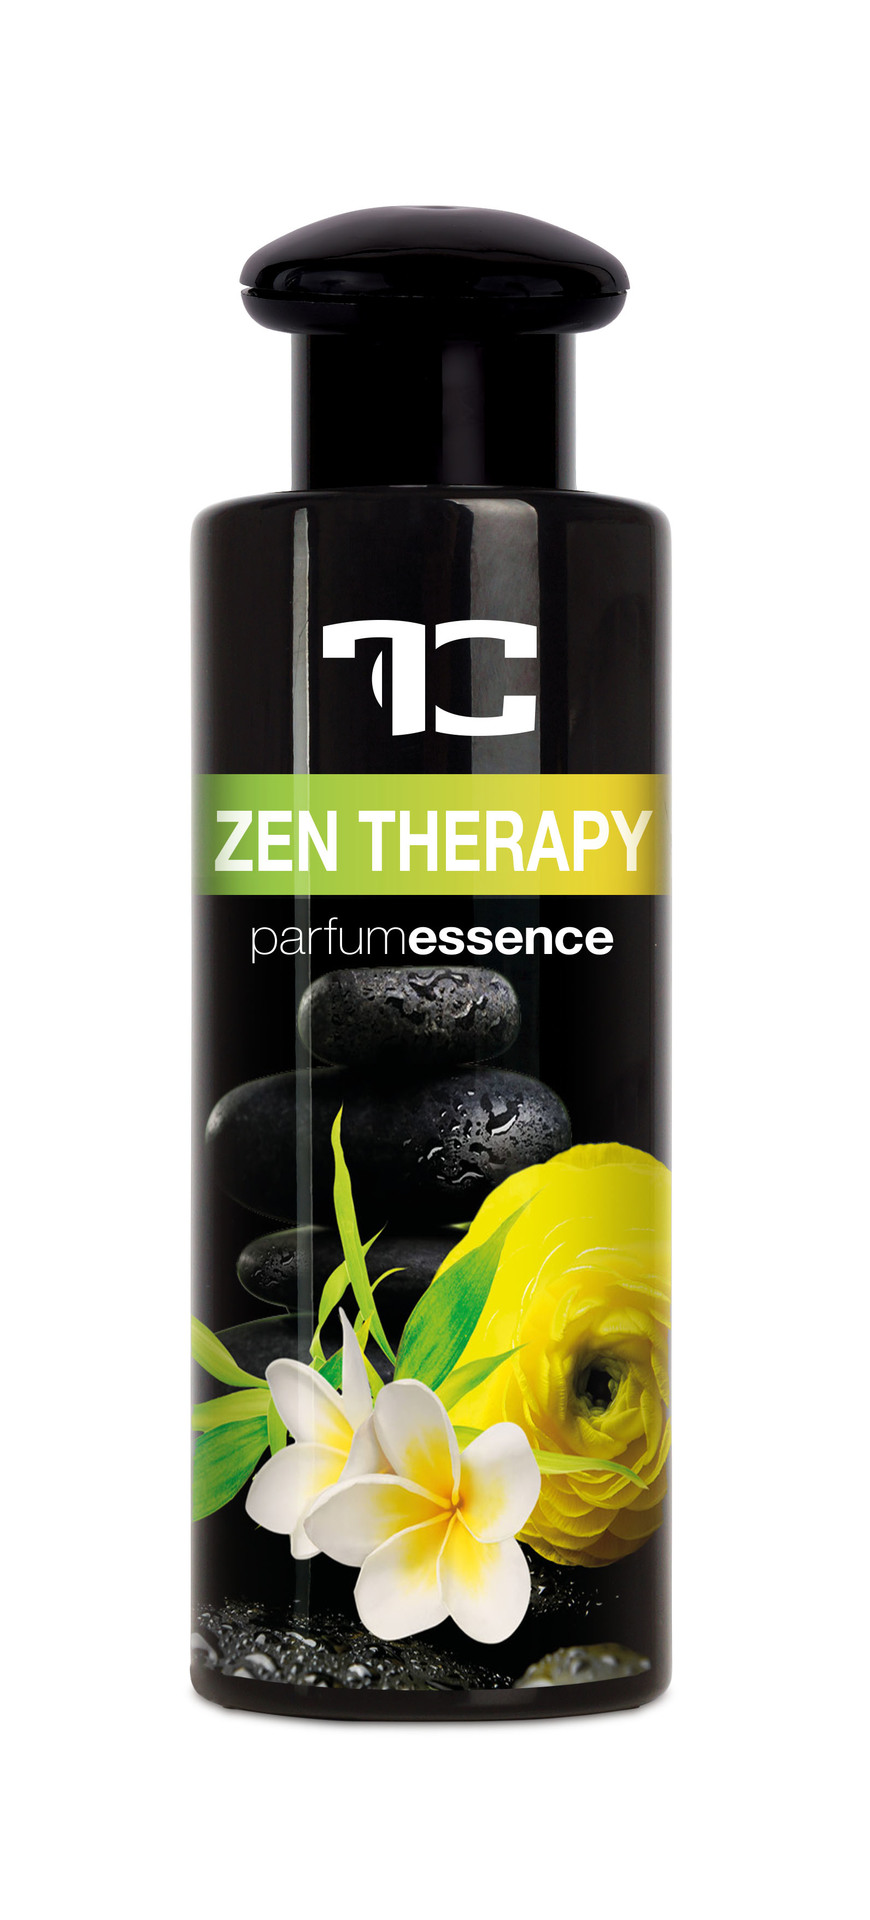 FC0390-PARFUM ESSENCE zen terapia 100 ml